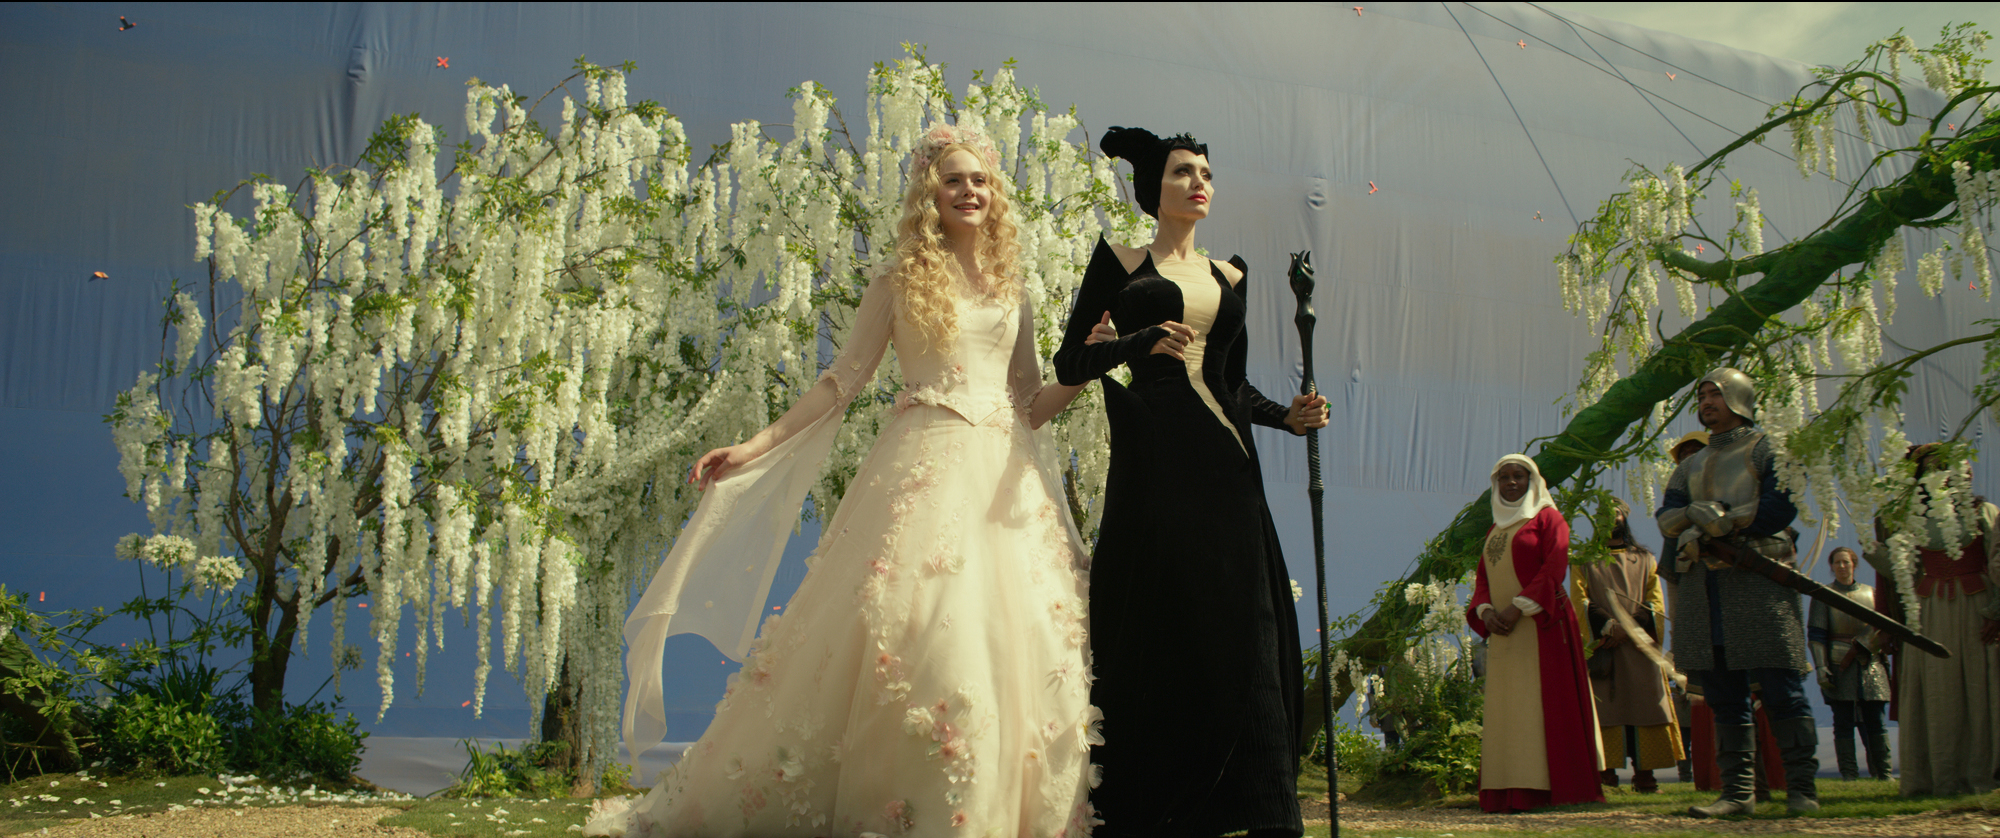 Maleficent Mistress Of Evil At Mill Film Part 2 Updated Pics Fxguide,Boat Neck Sheath Wedding Dress